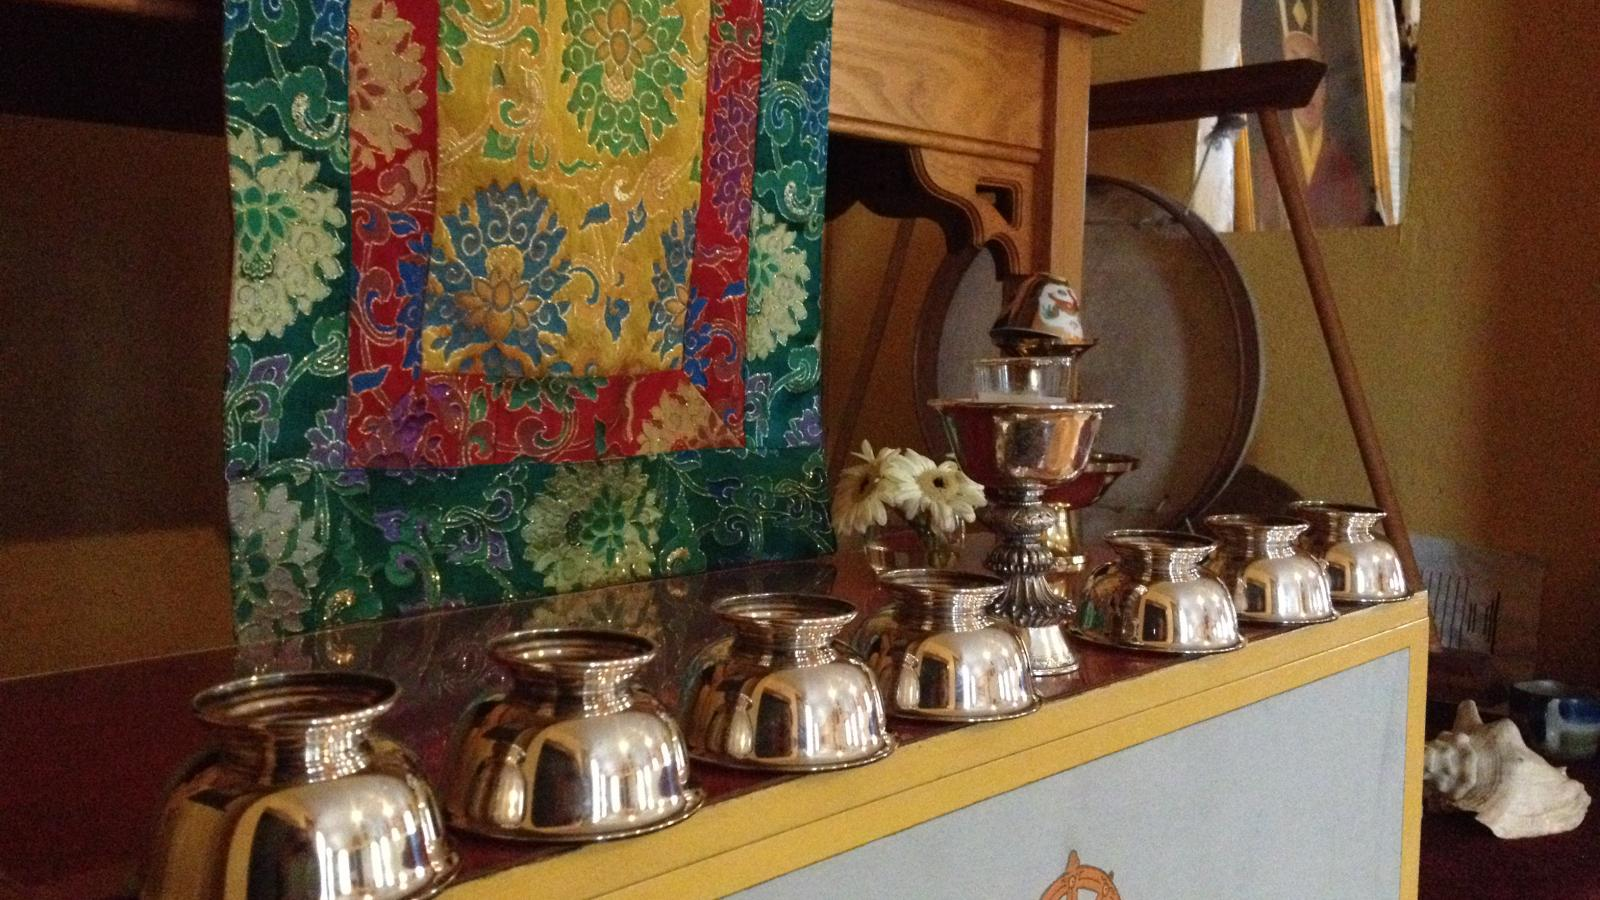 Silver bowls used for offerings at the Columbus Karma Thegsum Chöling Center